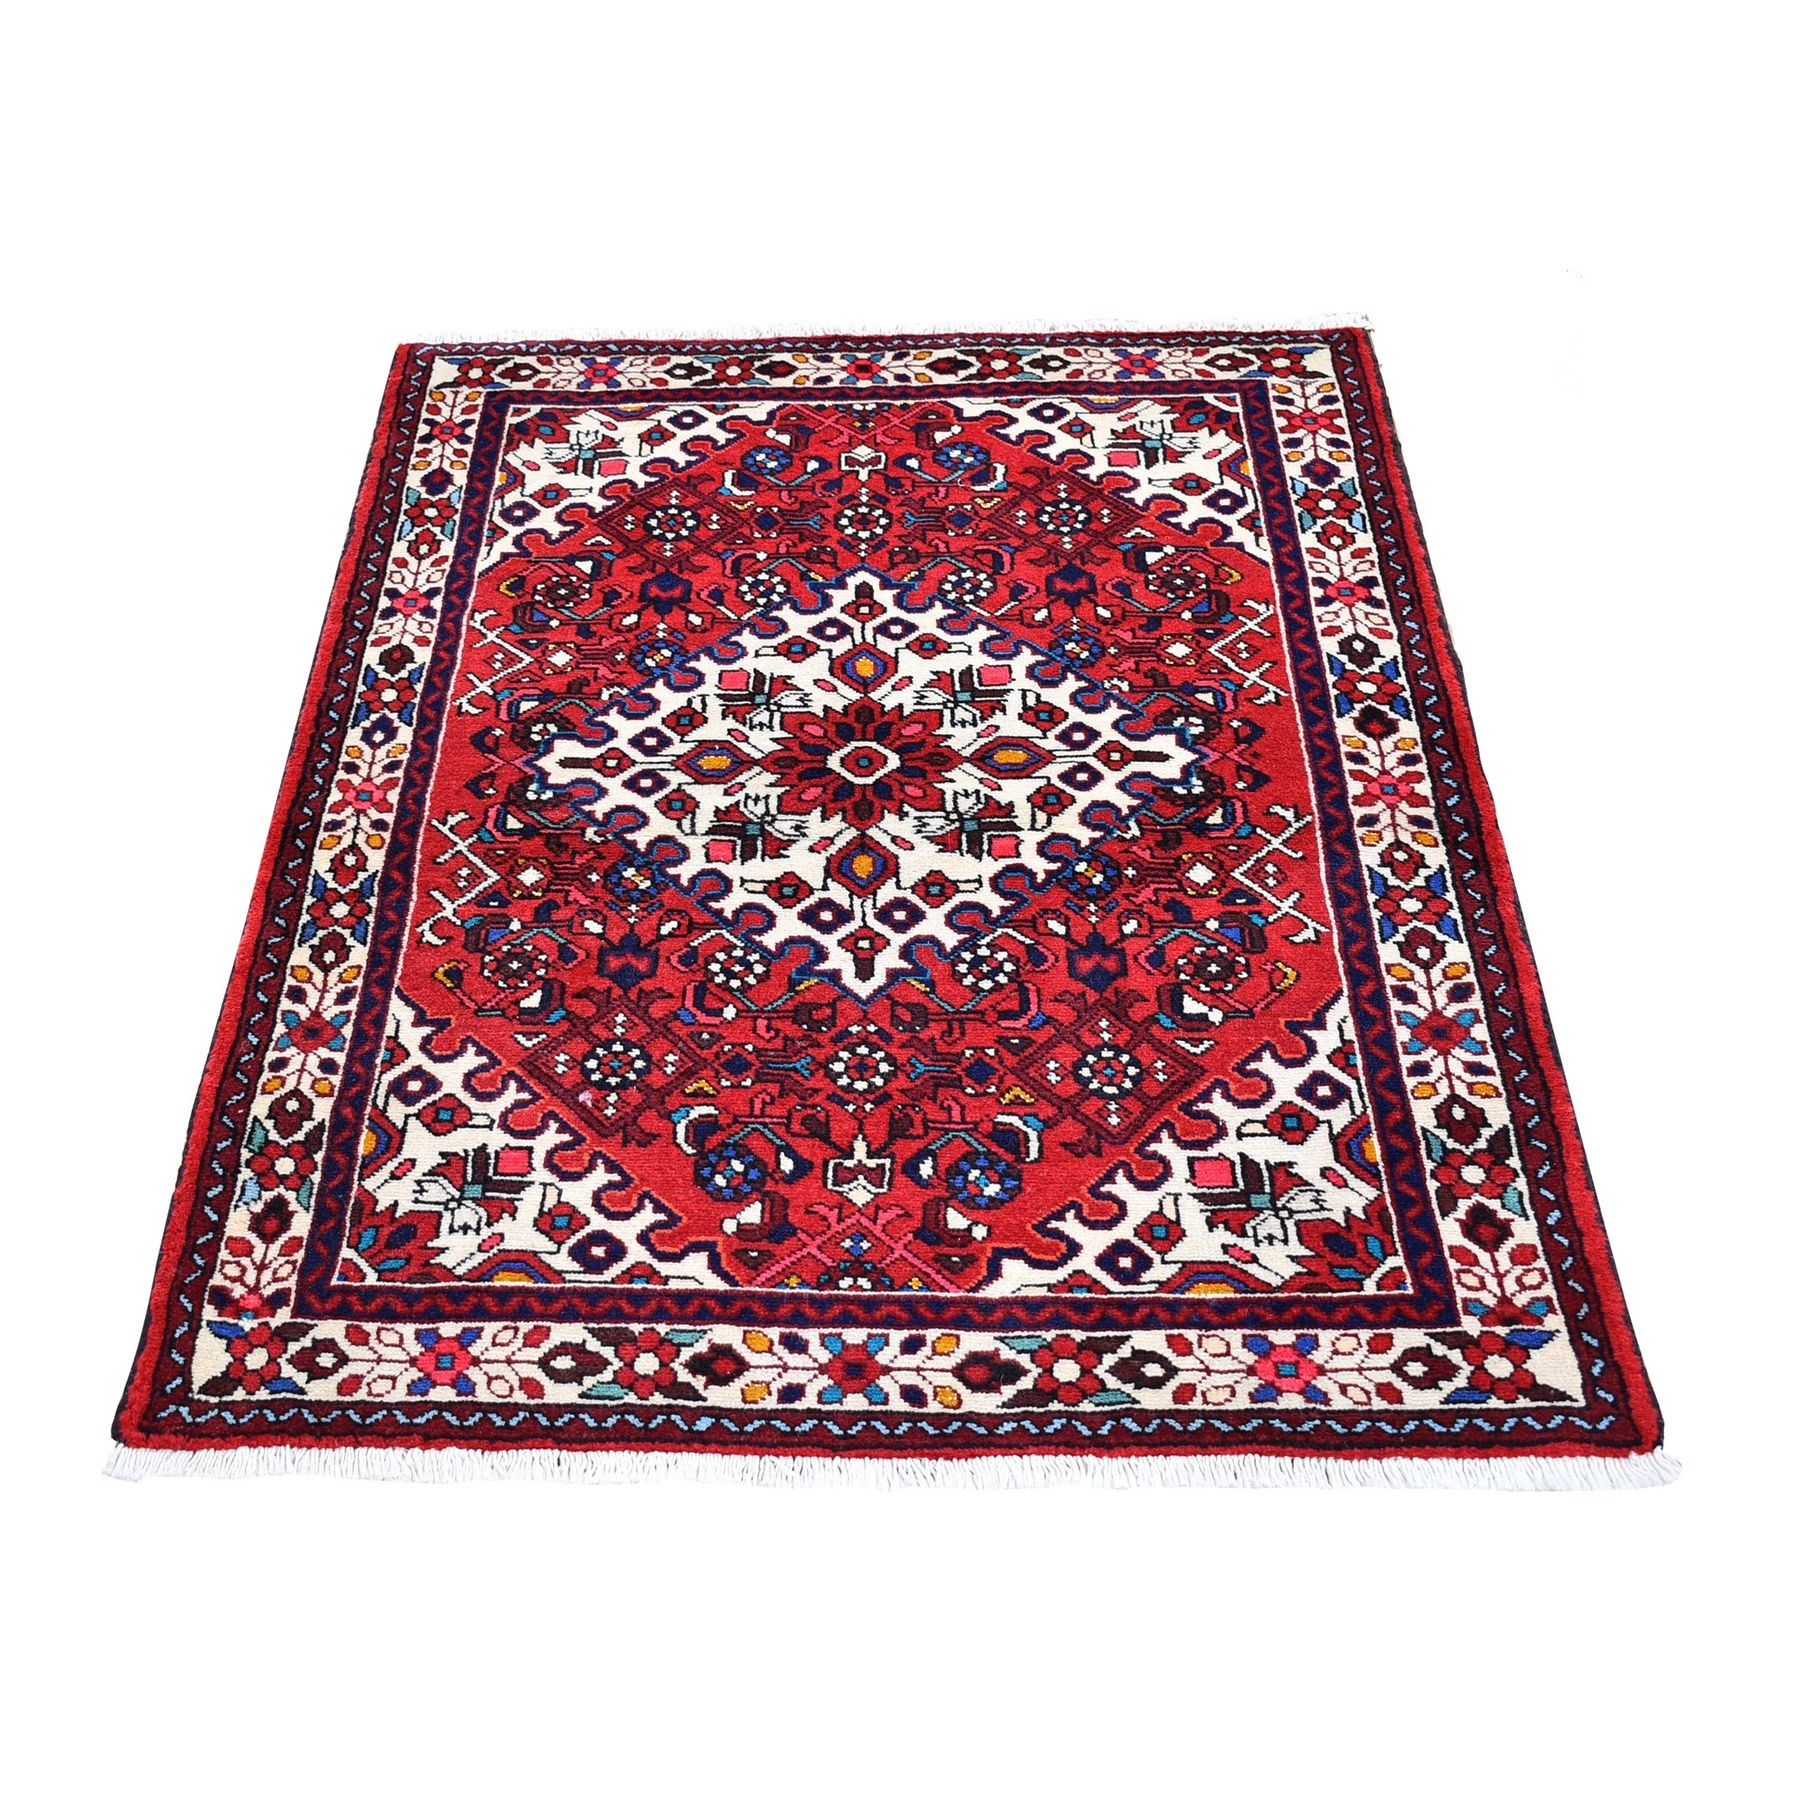 "3'6""x4'8"" Red New Persian Hamadan Flower Design Organic Wool Hand Knotted Oriental Rug"